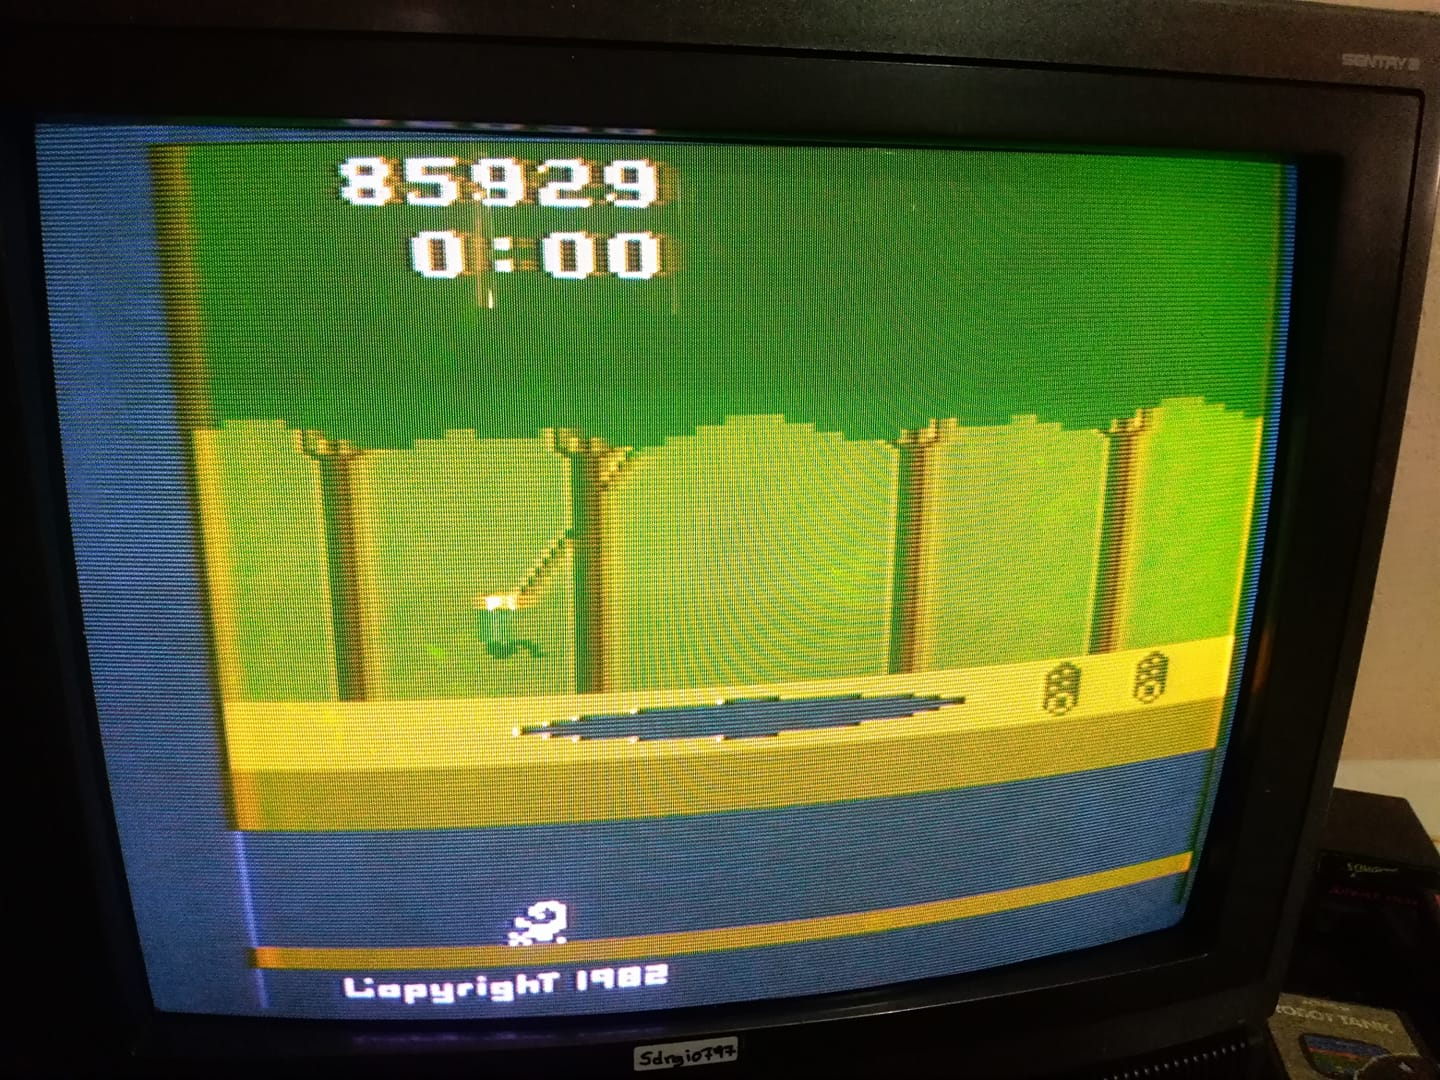 Pitfall! 85,929 points